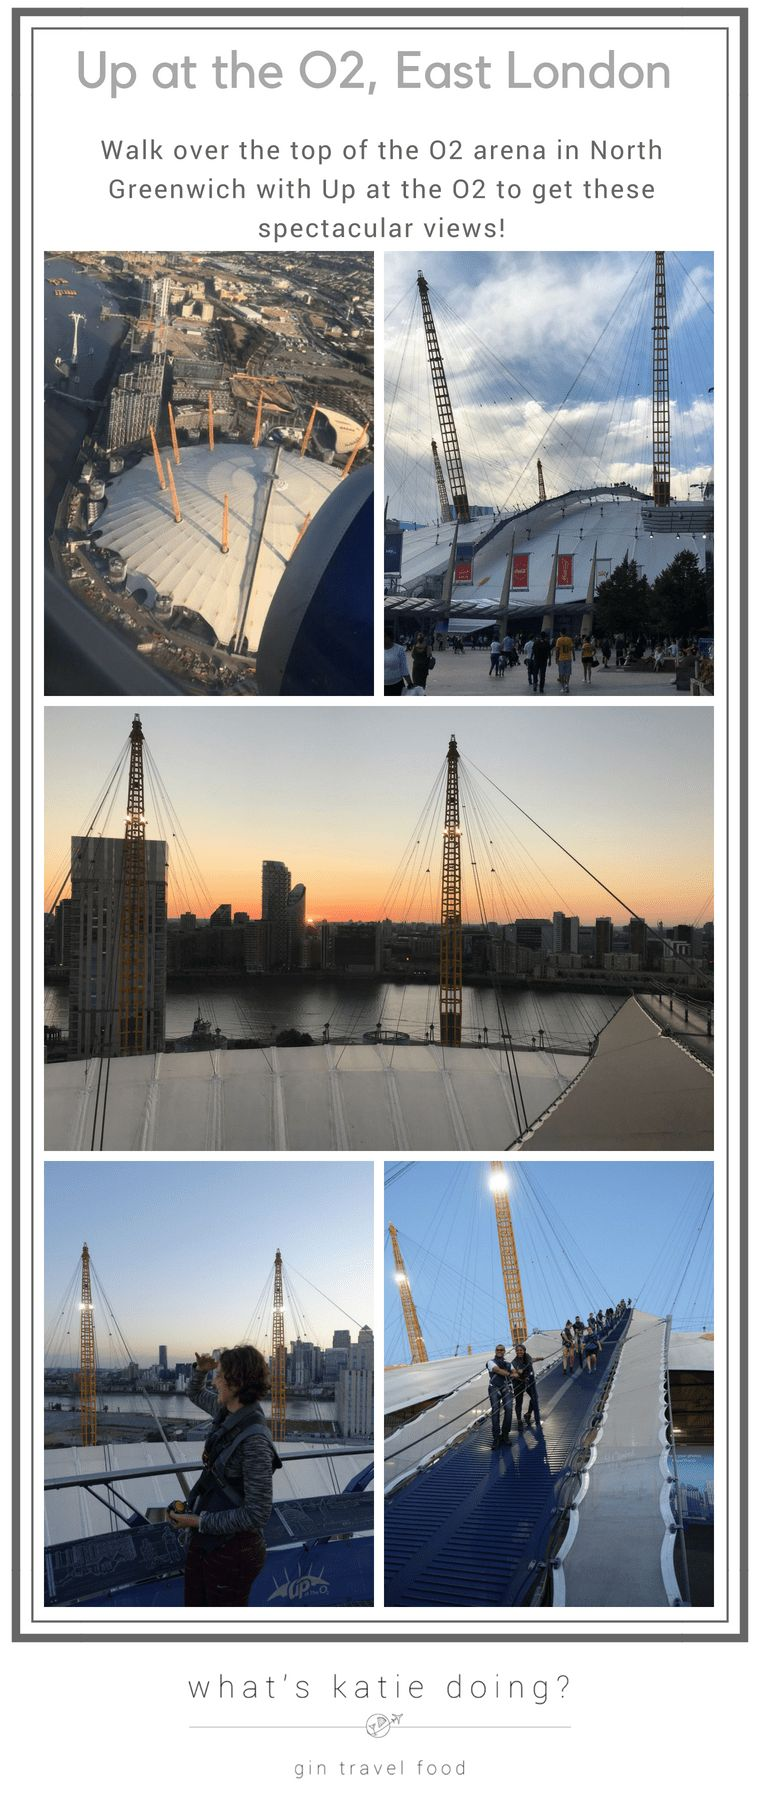 Up at the O2 - walking over the O2 Arena